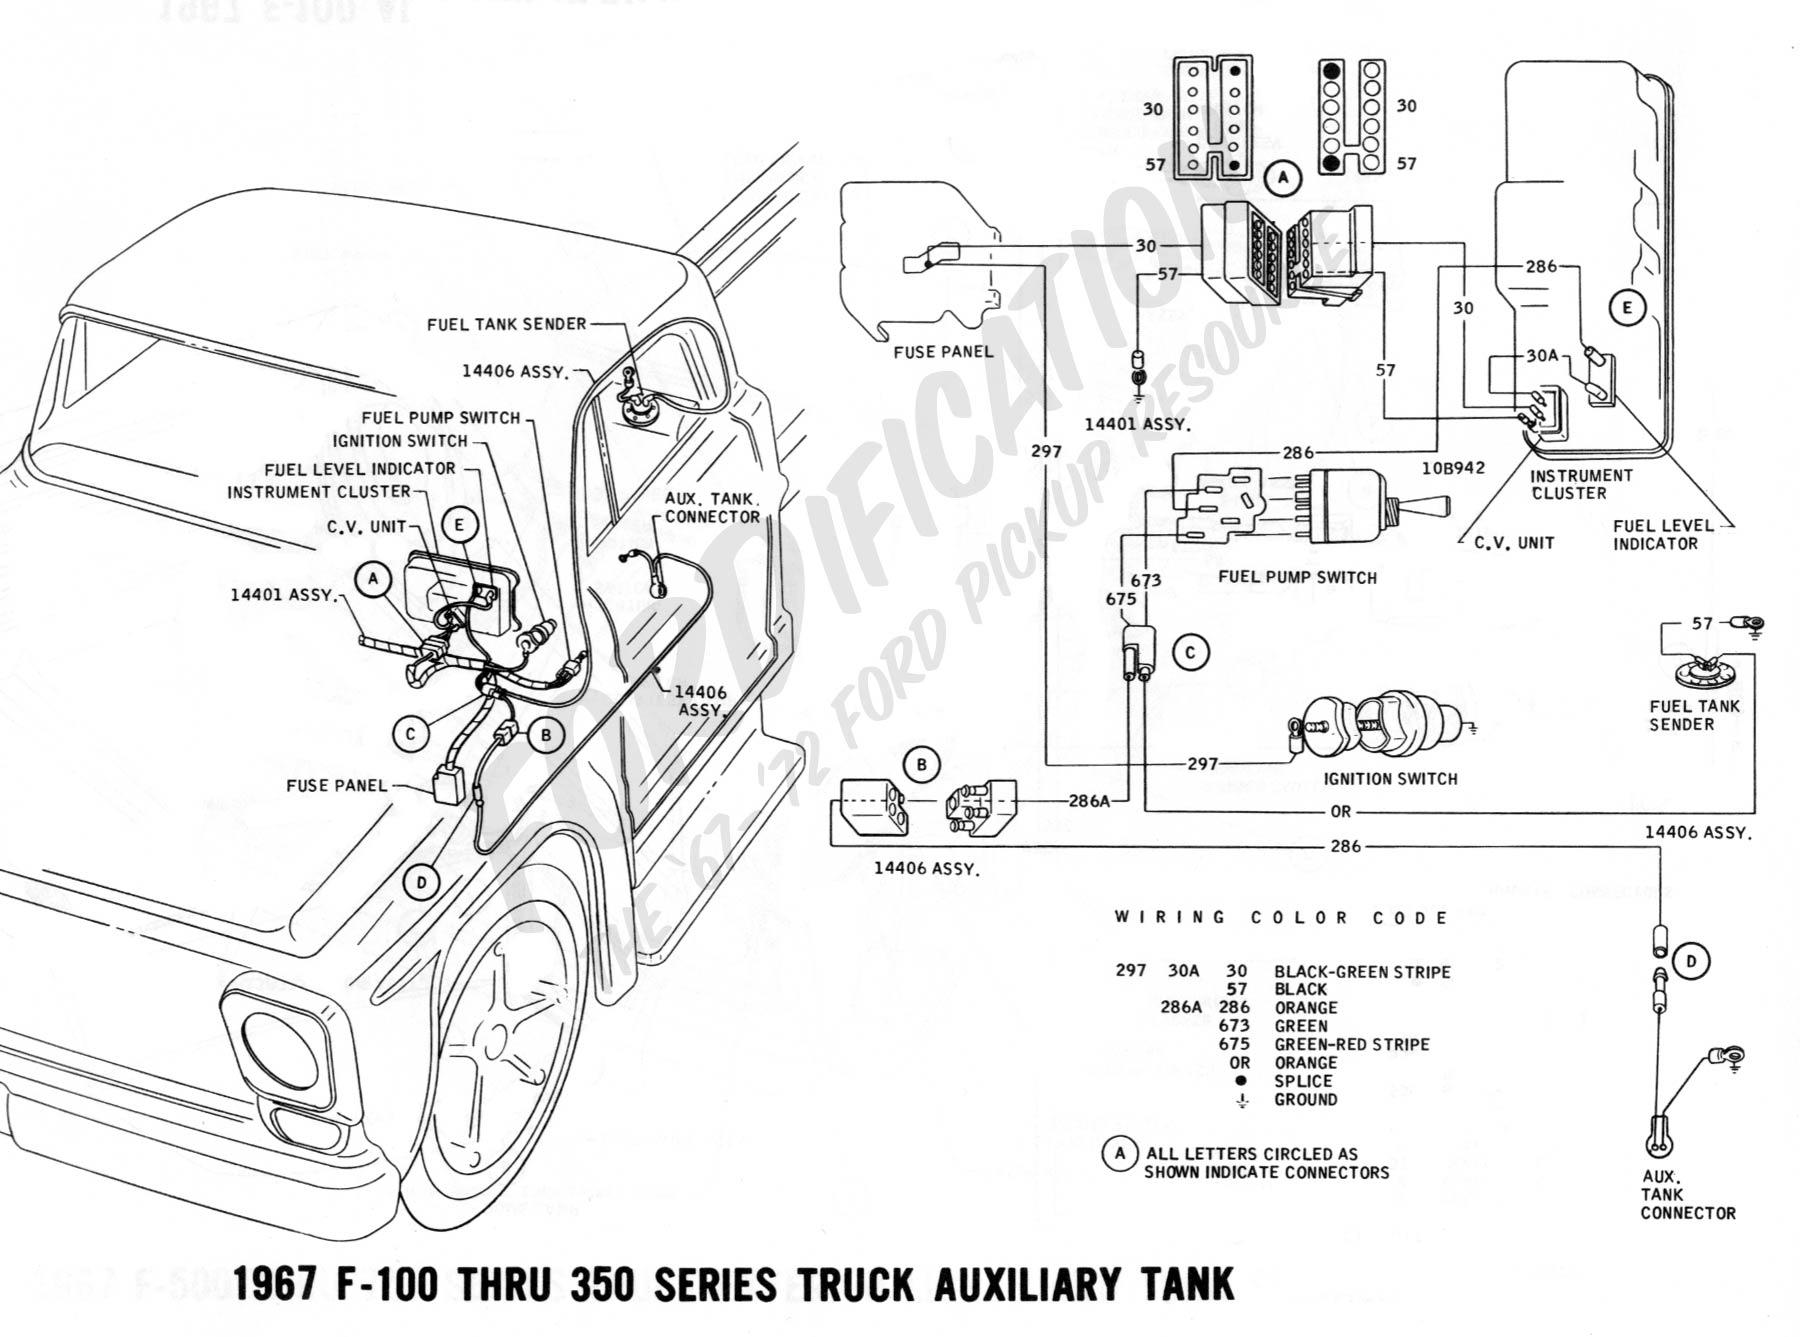 wiring 1967auxtank ford truck technical drawings and schematics section h wiring 1992 Ford F-150 Transmission Diagram at panicattacktreatment.co